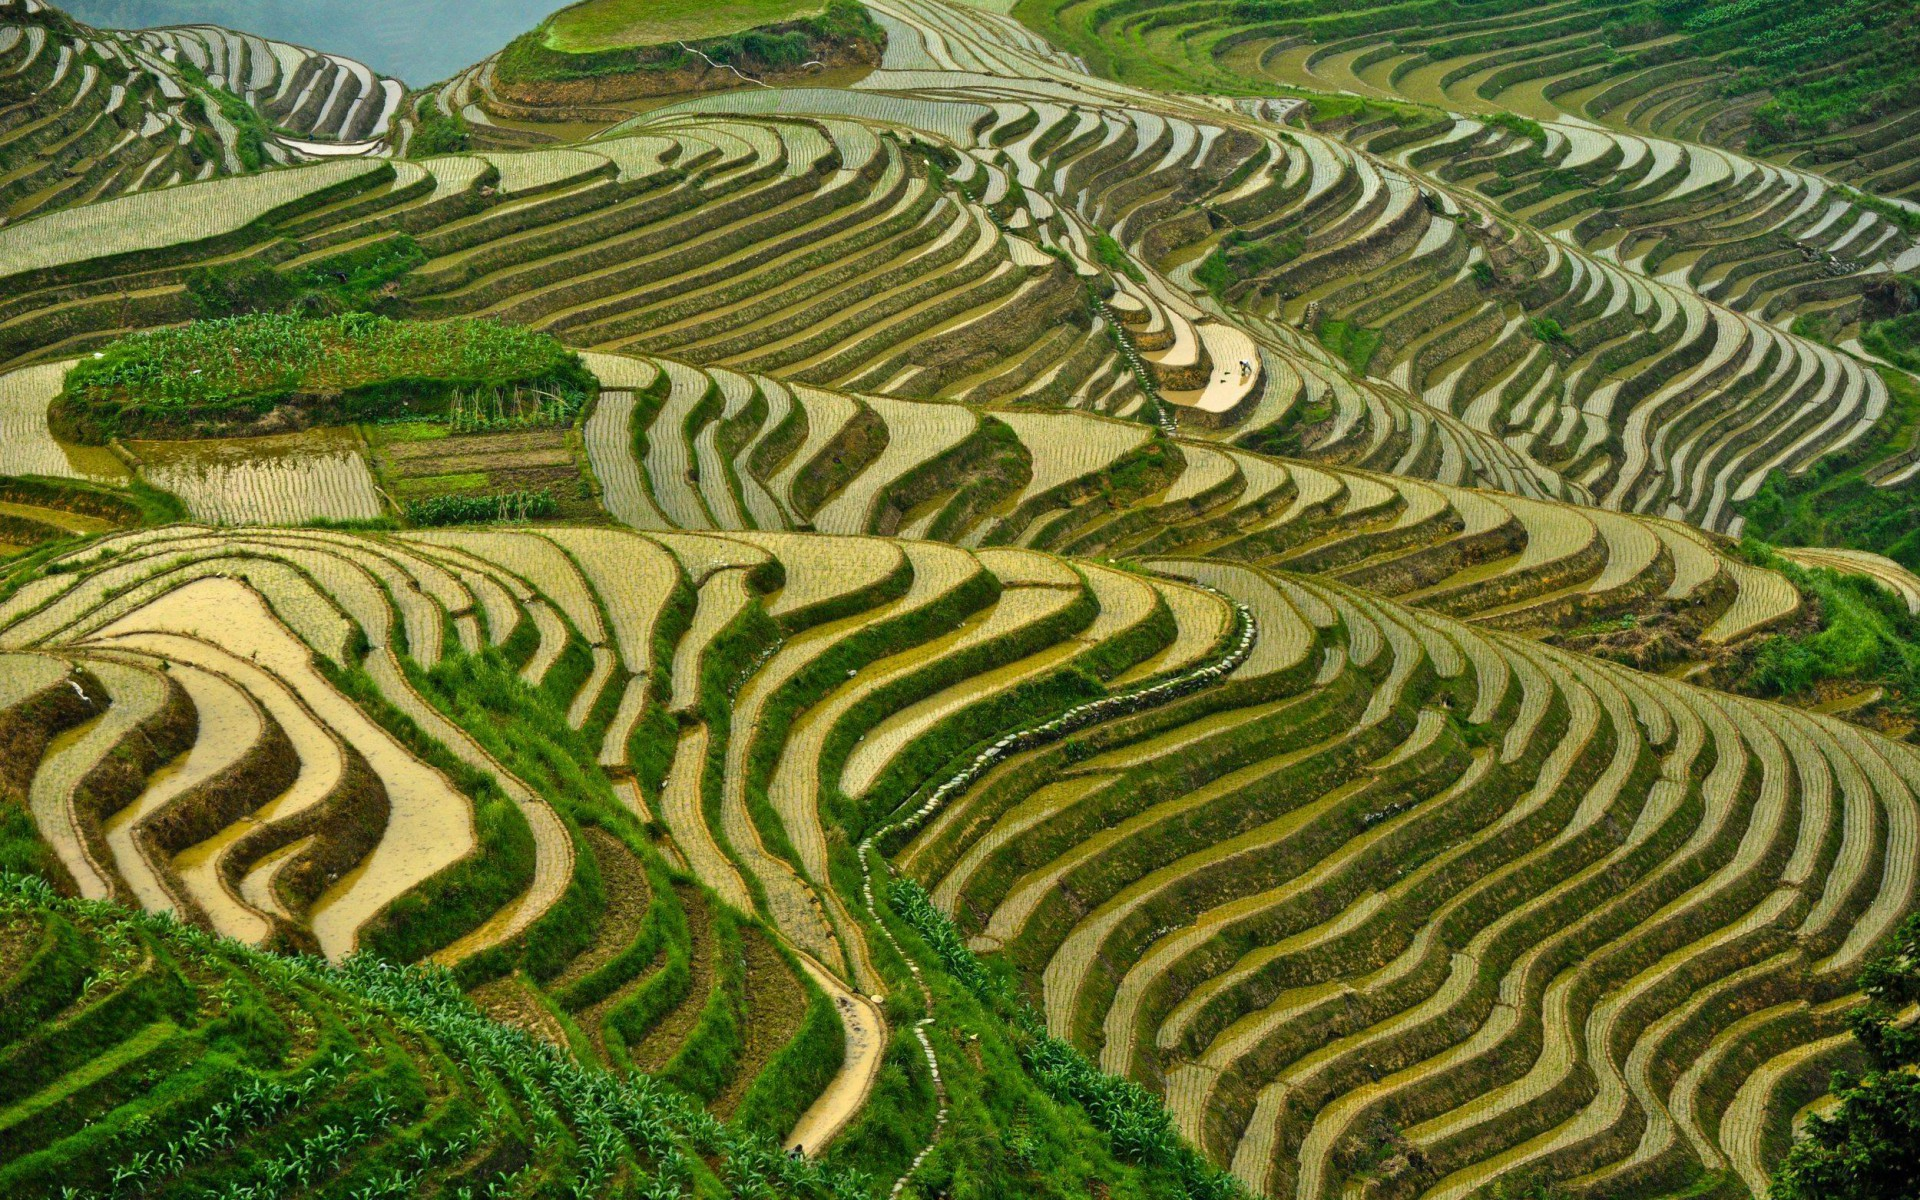 Longji reis terrassen china hintergrundbilder longji for Terrace farming meaning